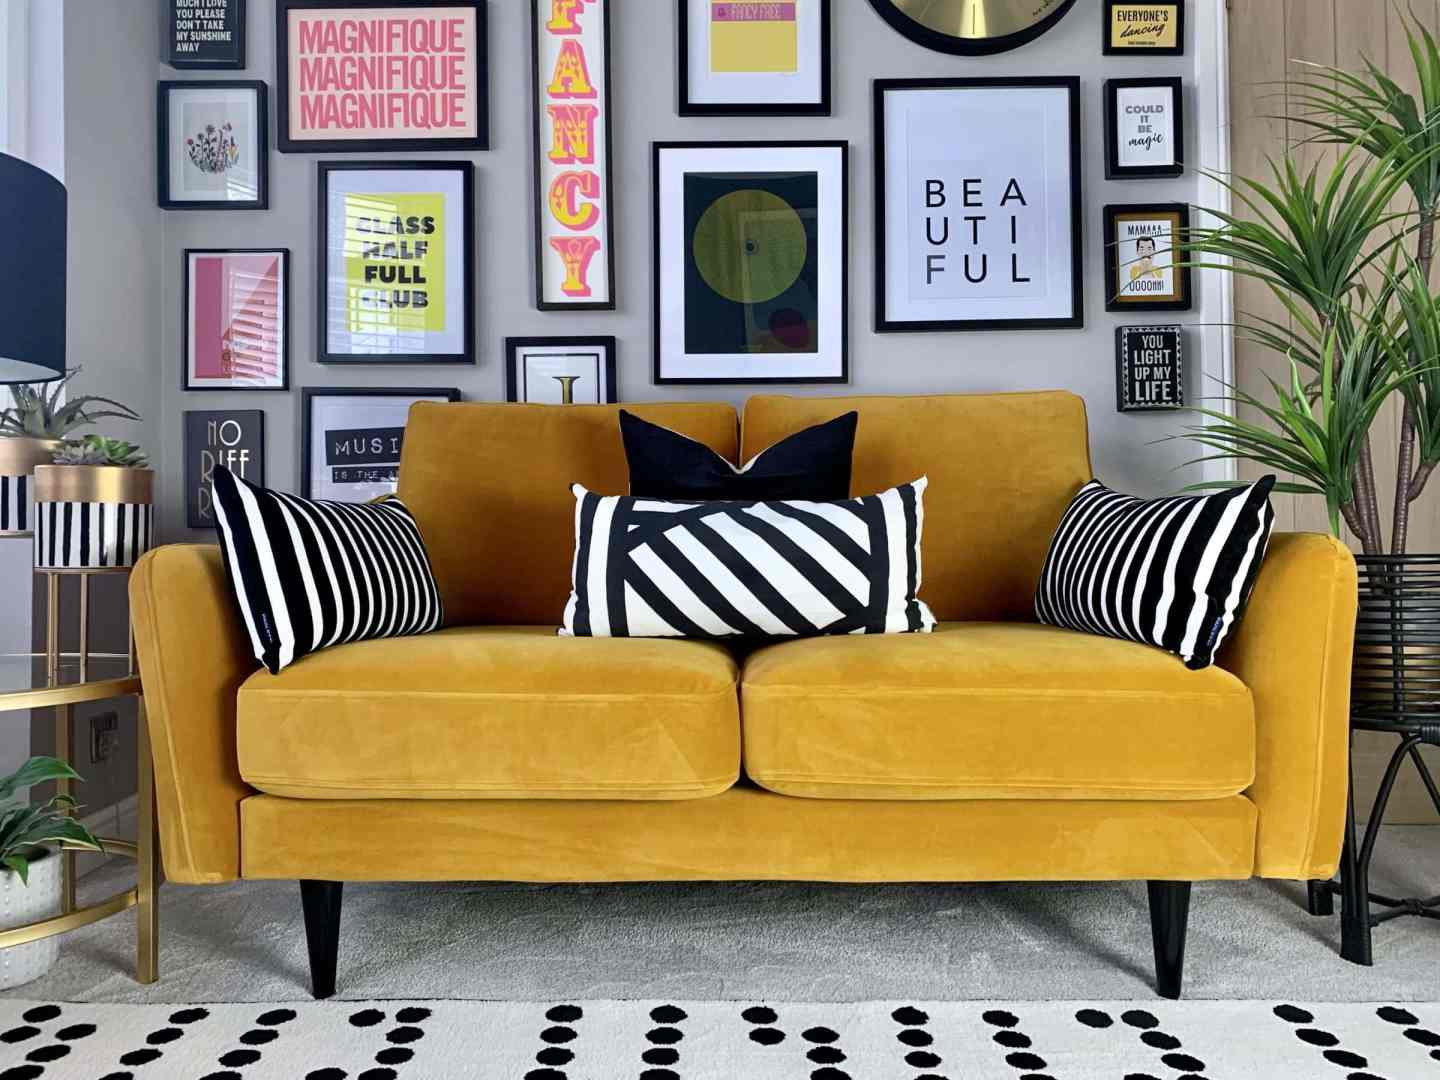 bright yellow velvet 2 seater sofa with brightly coloured gallery wall and monochrome rug